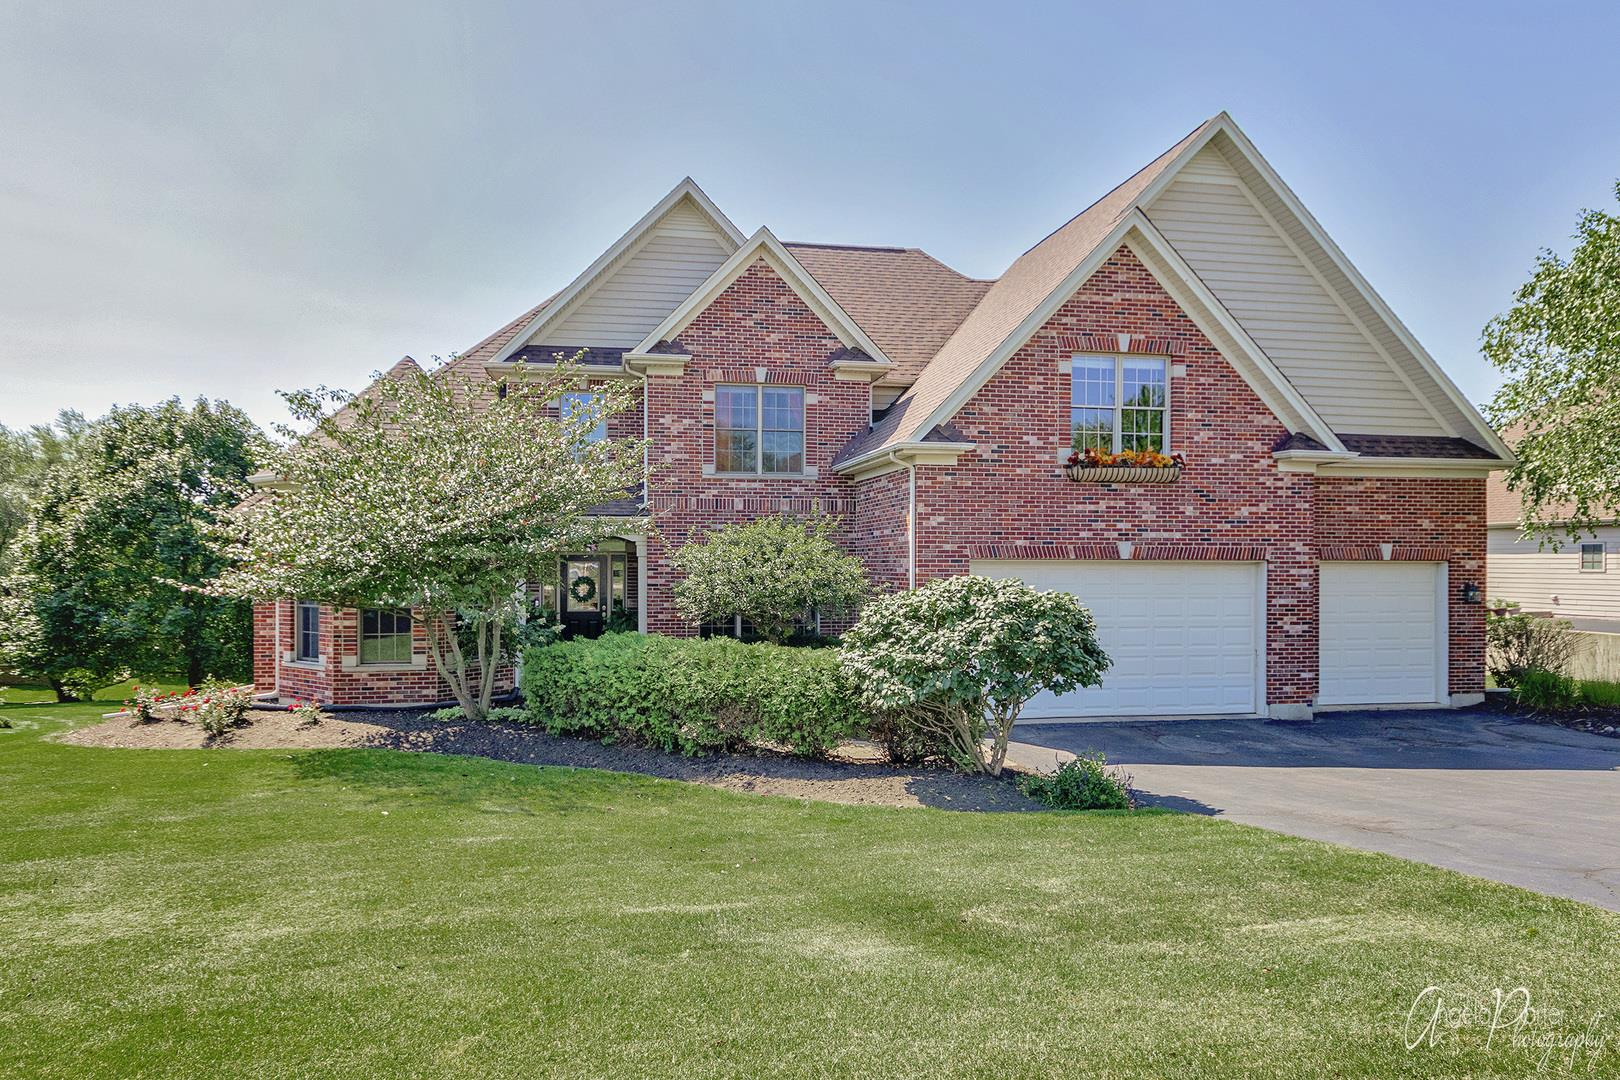 951 Dakota Drive, Woodstock, IL 60098 - #: 10624009